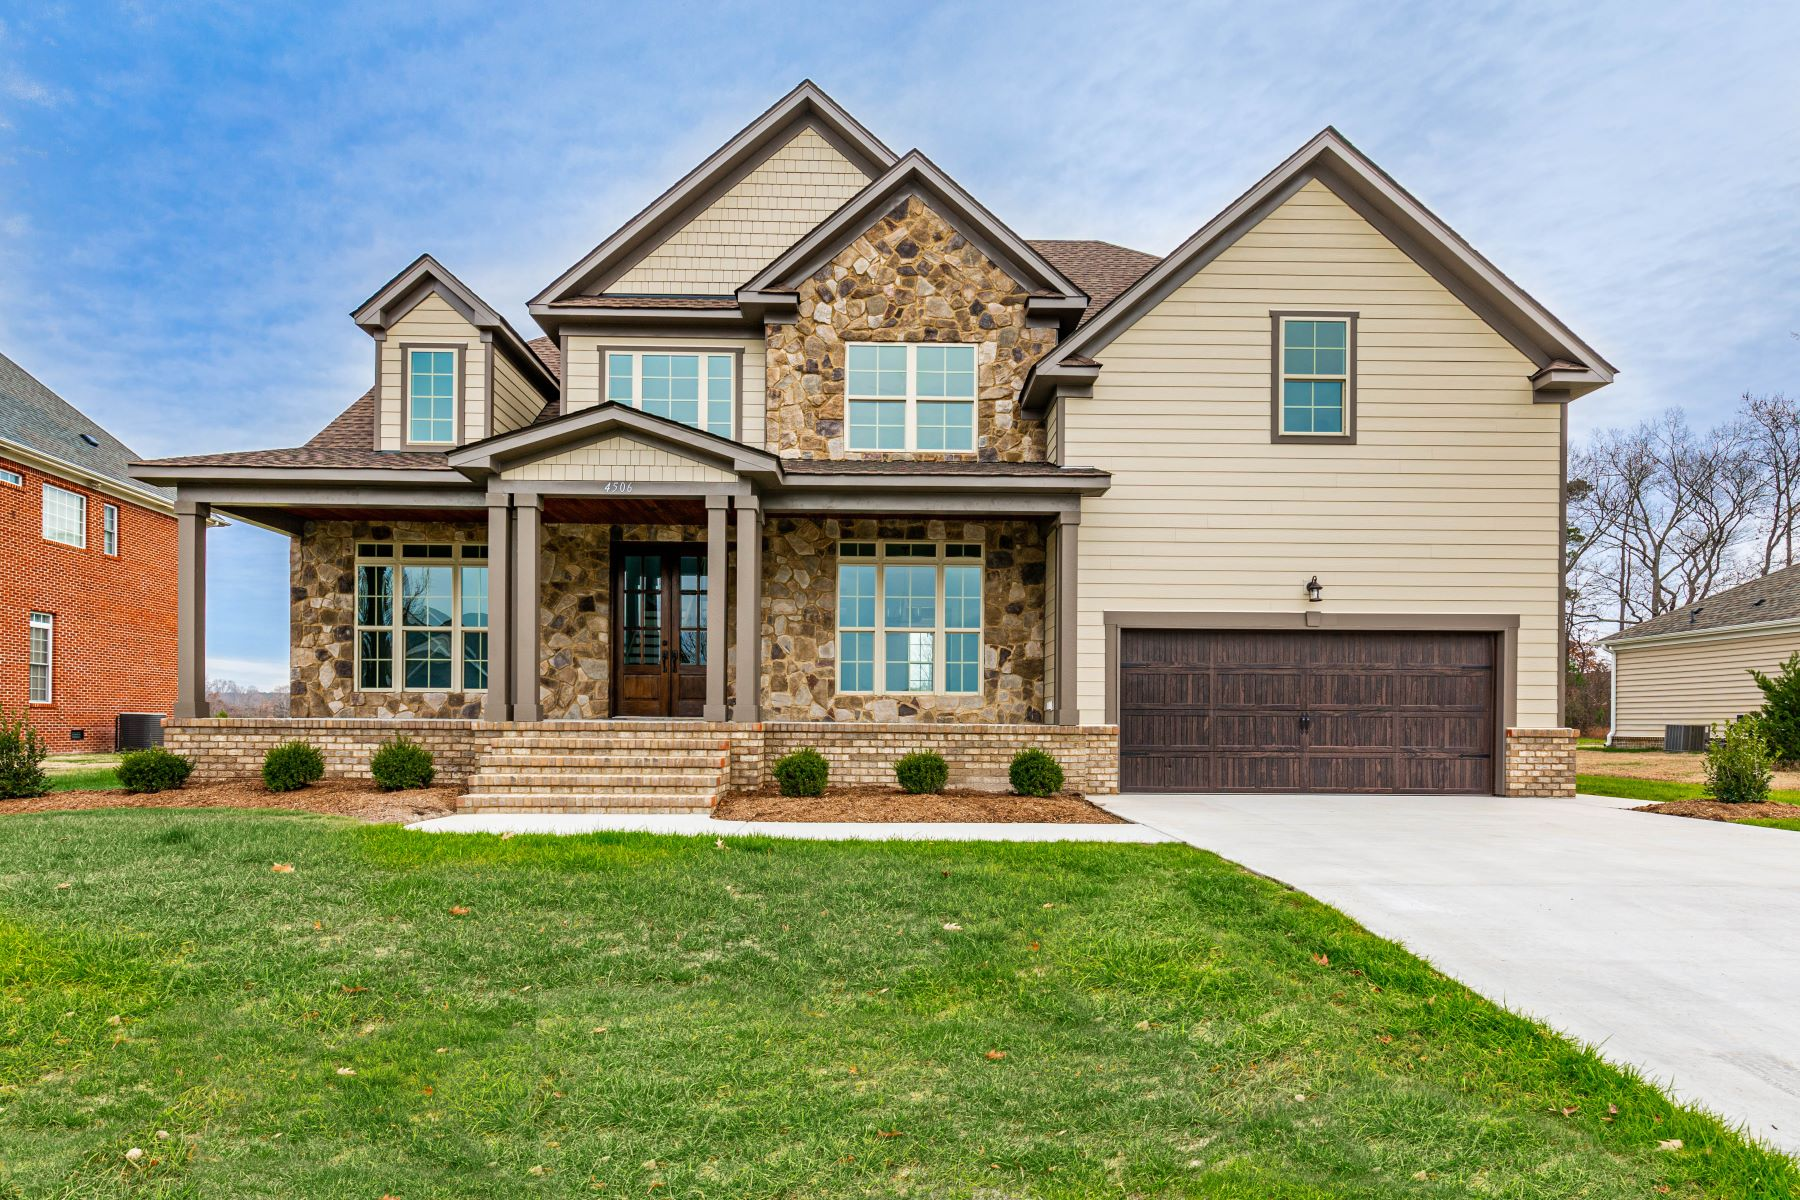 Single Family Homes for Active at 4506 Shannon Ln Suffolk, Virginia 23435 United States